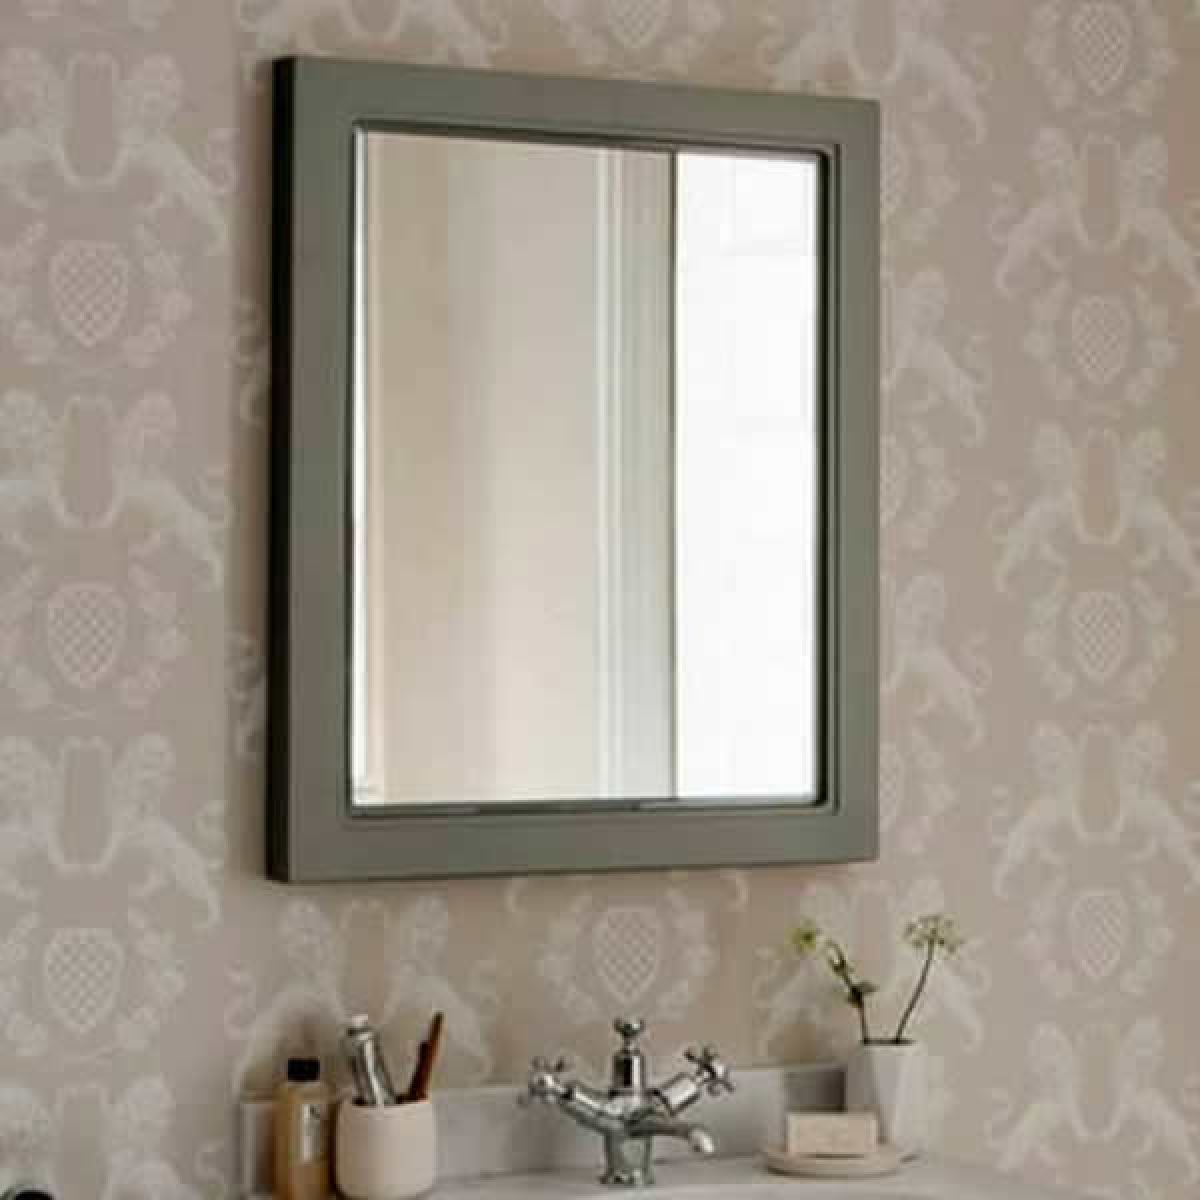 burlington bathroom mirror burlington framed mirror uk bathrooms 12208